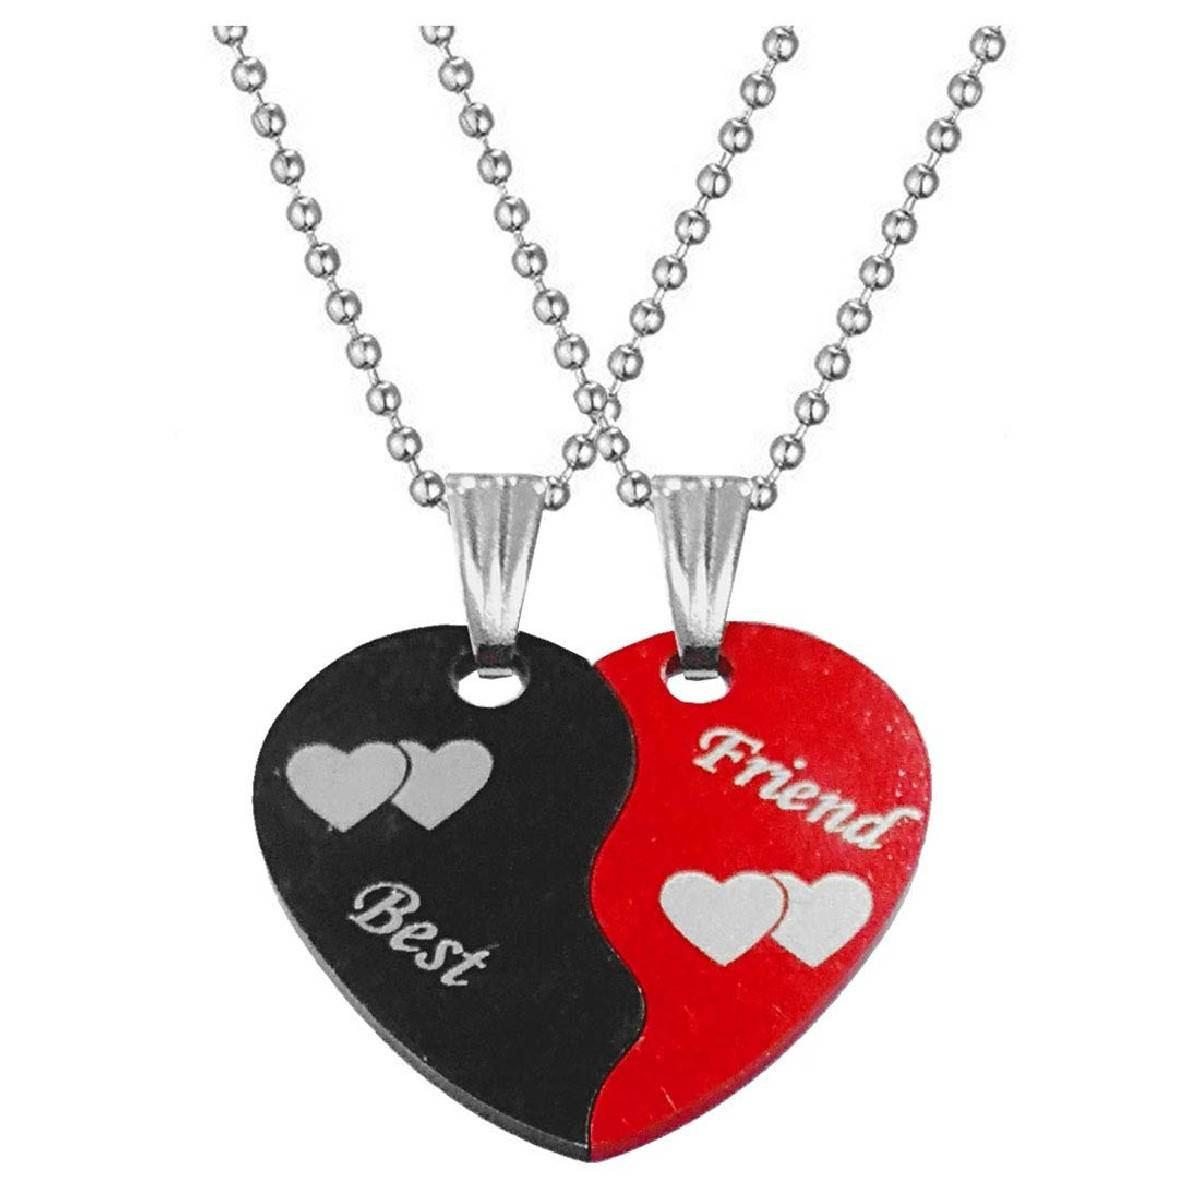 Best Friend Couple Red Black Stainless Steel Necklace Pendant for Men Women